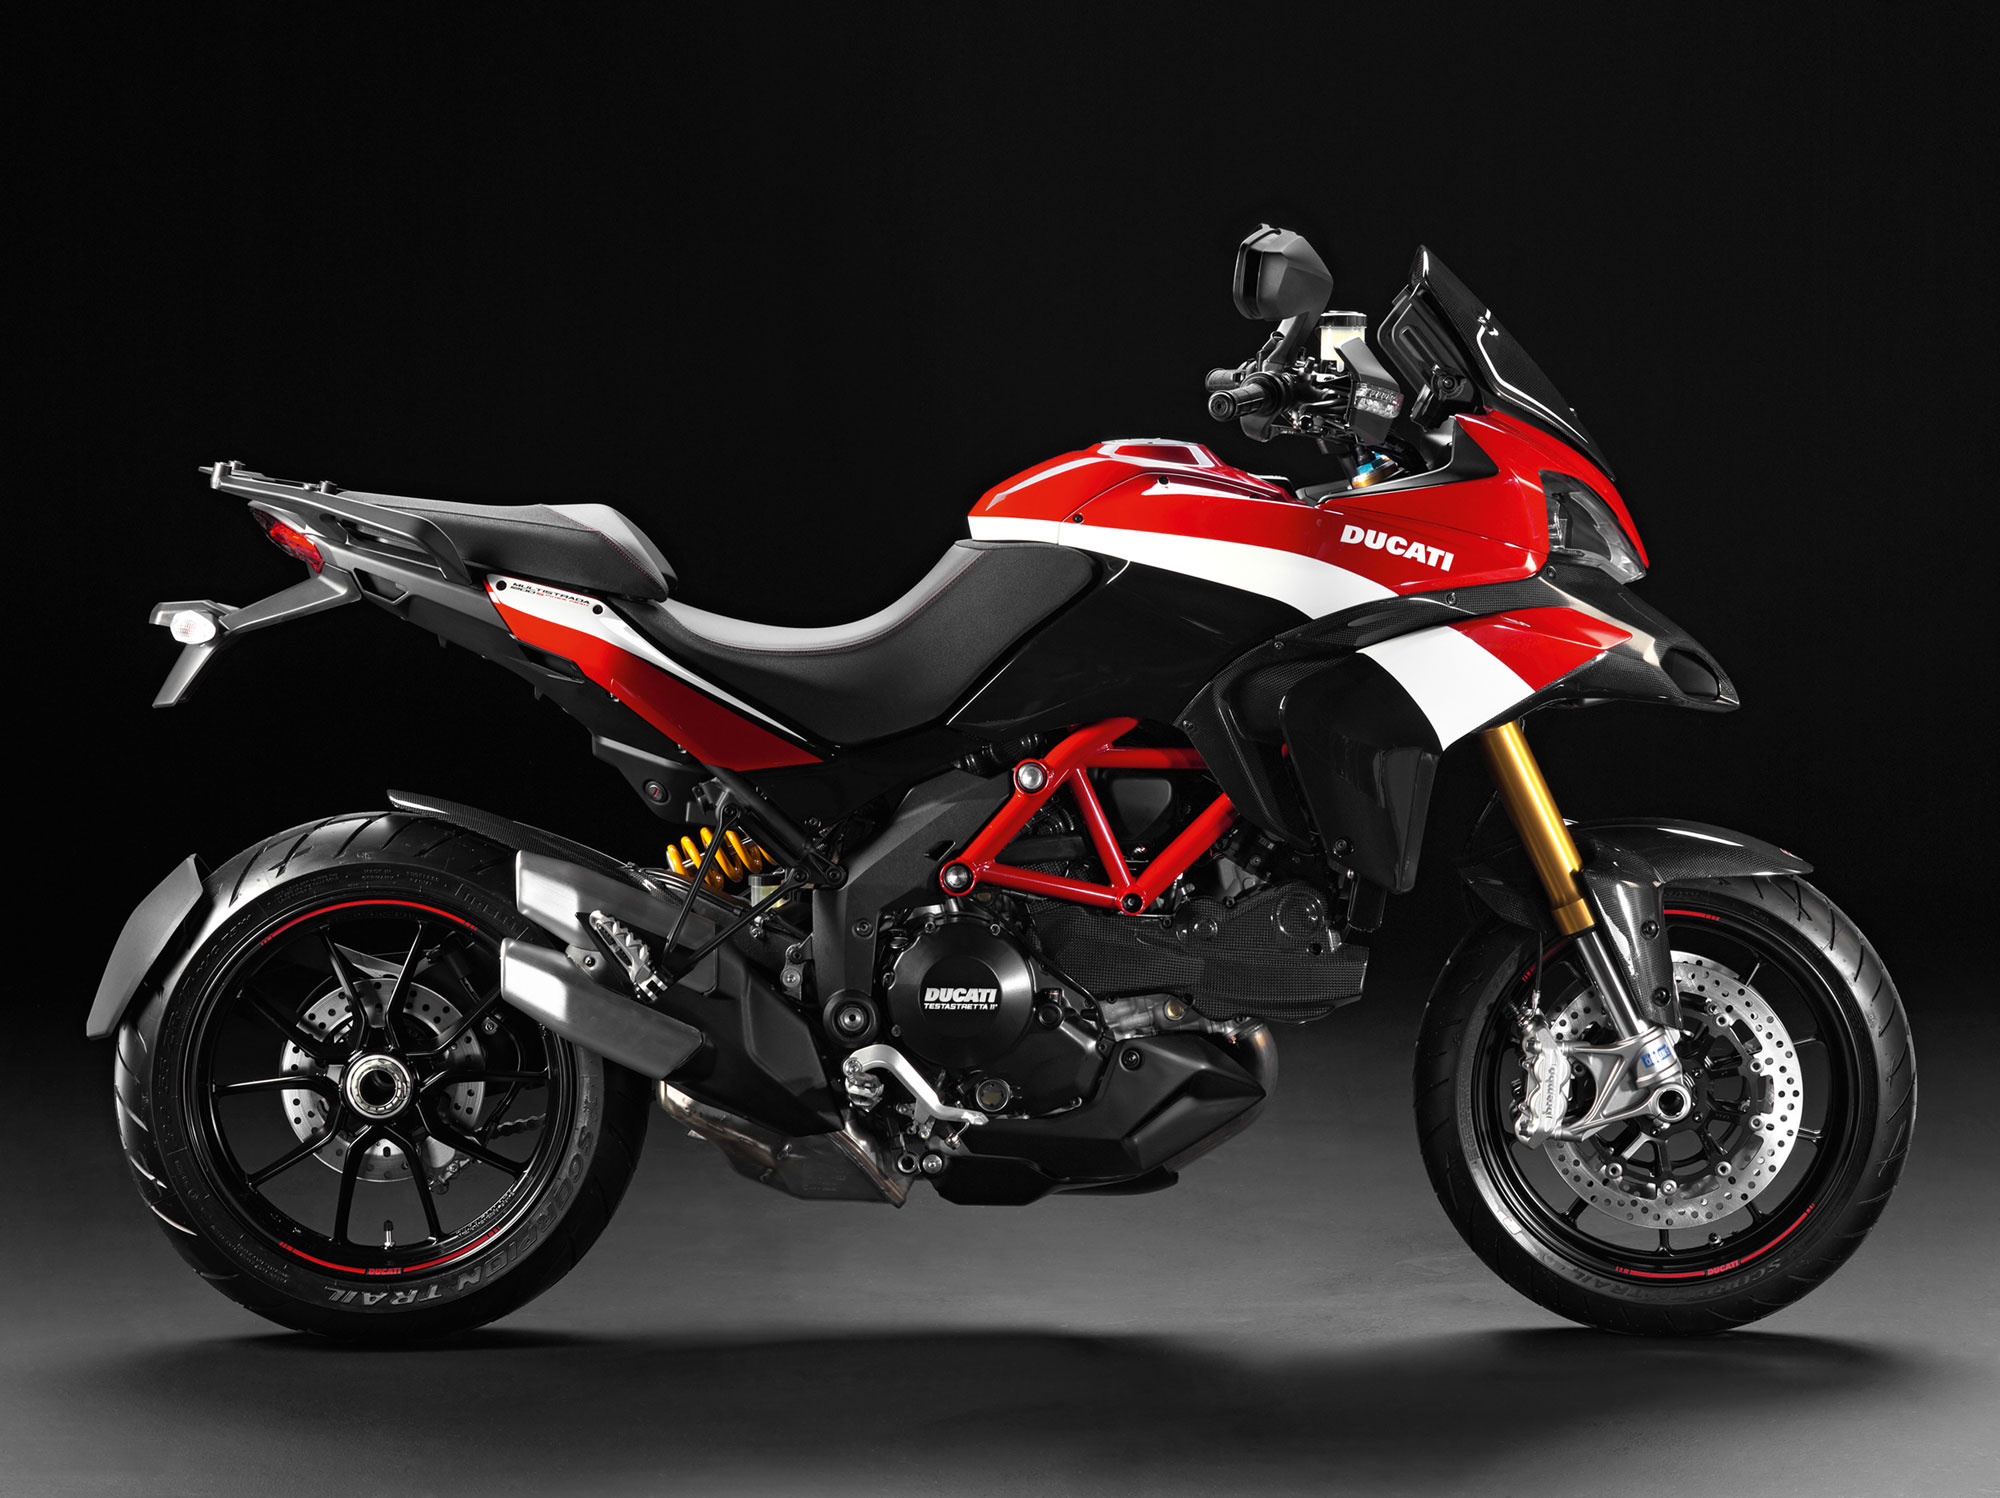 2012 ducati multistrada 1200s pikes peak review. Black Bedroom Furniture Sets. Home Design Ideas